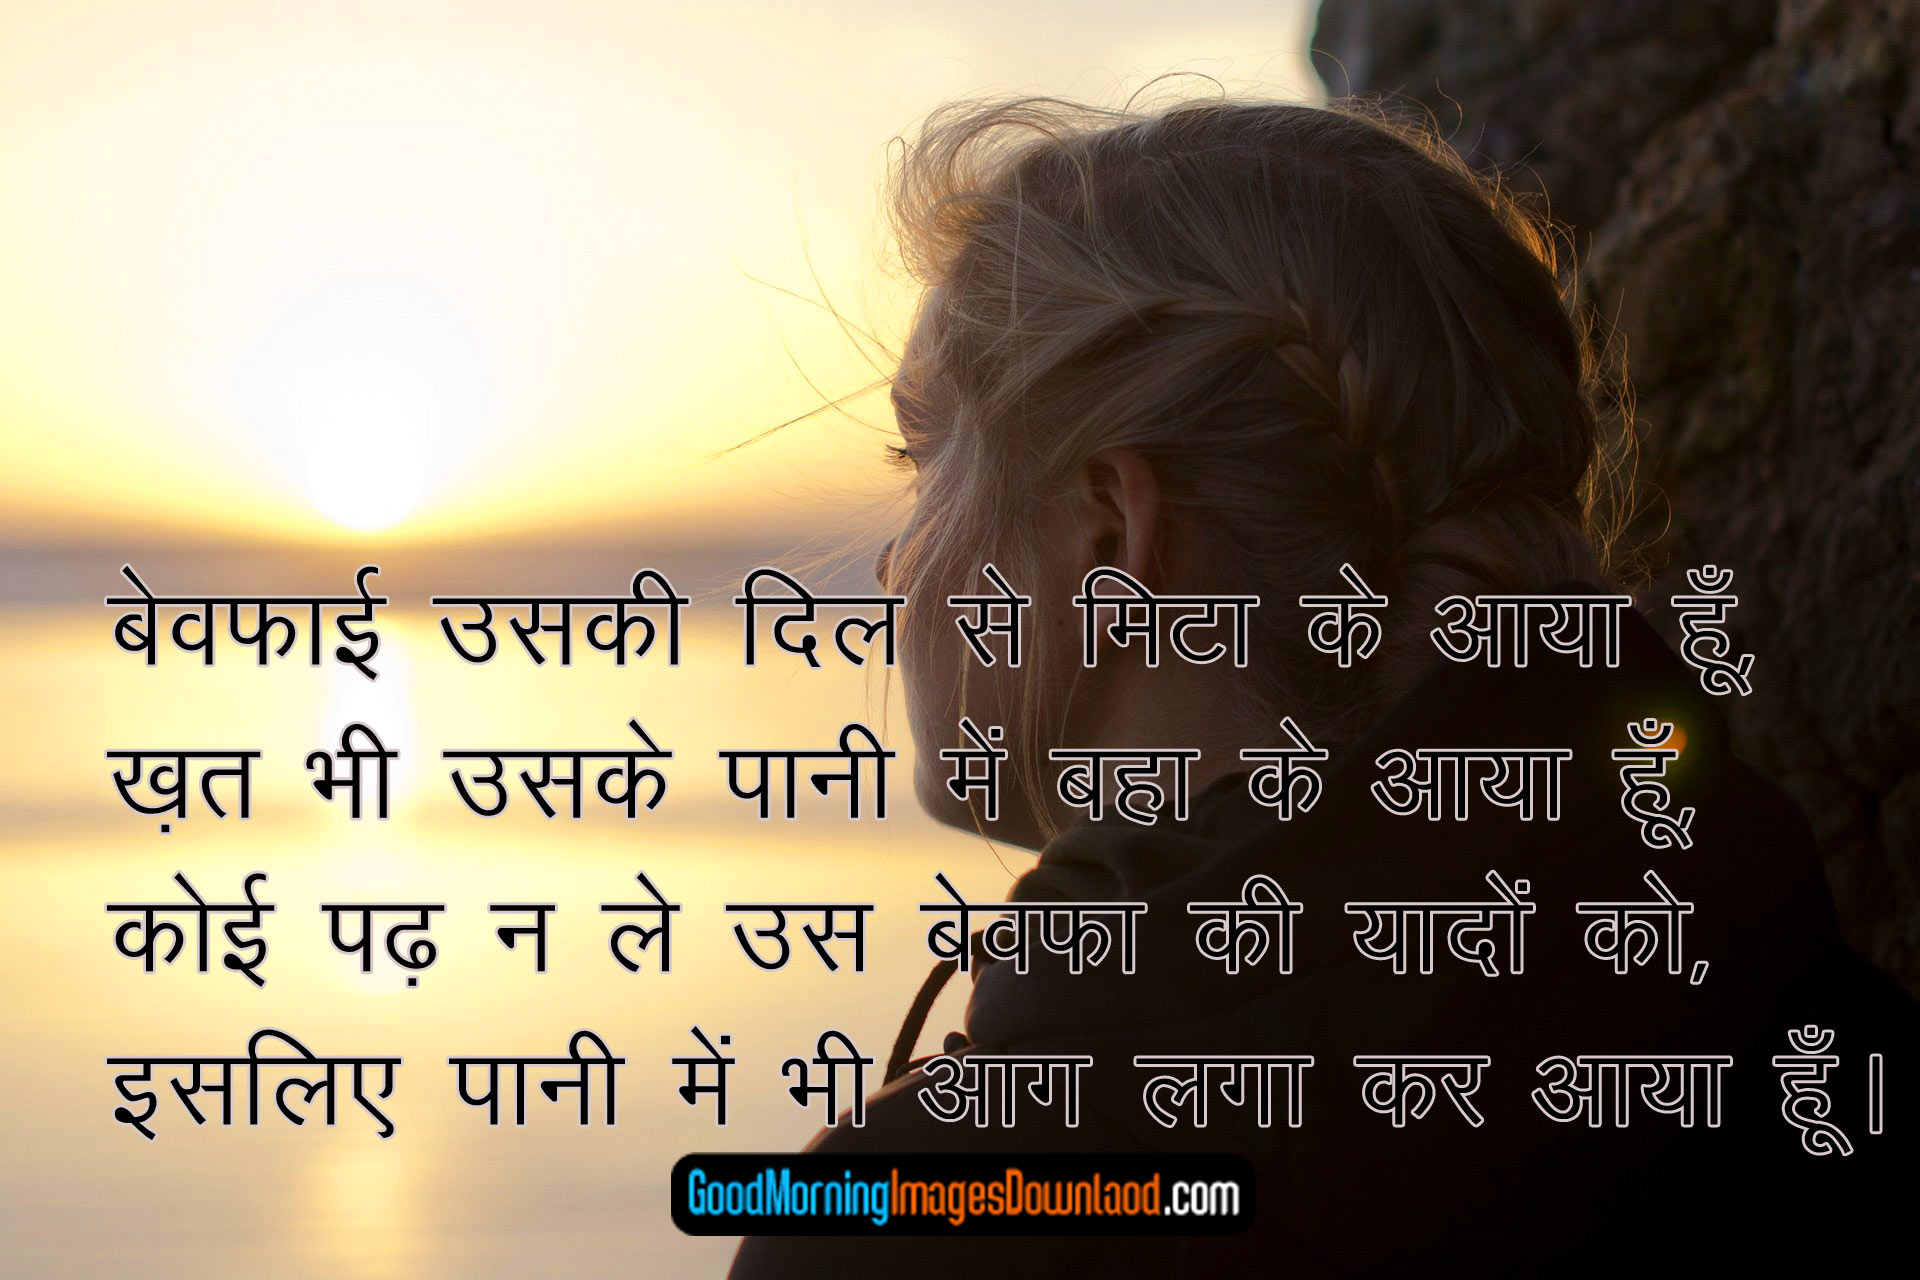 Bewafa Images With Hindi Shayari Wallpaper for Whatsapp